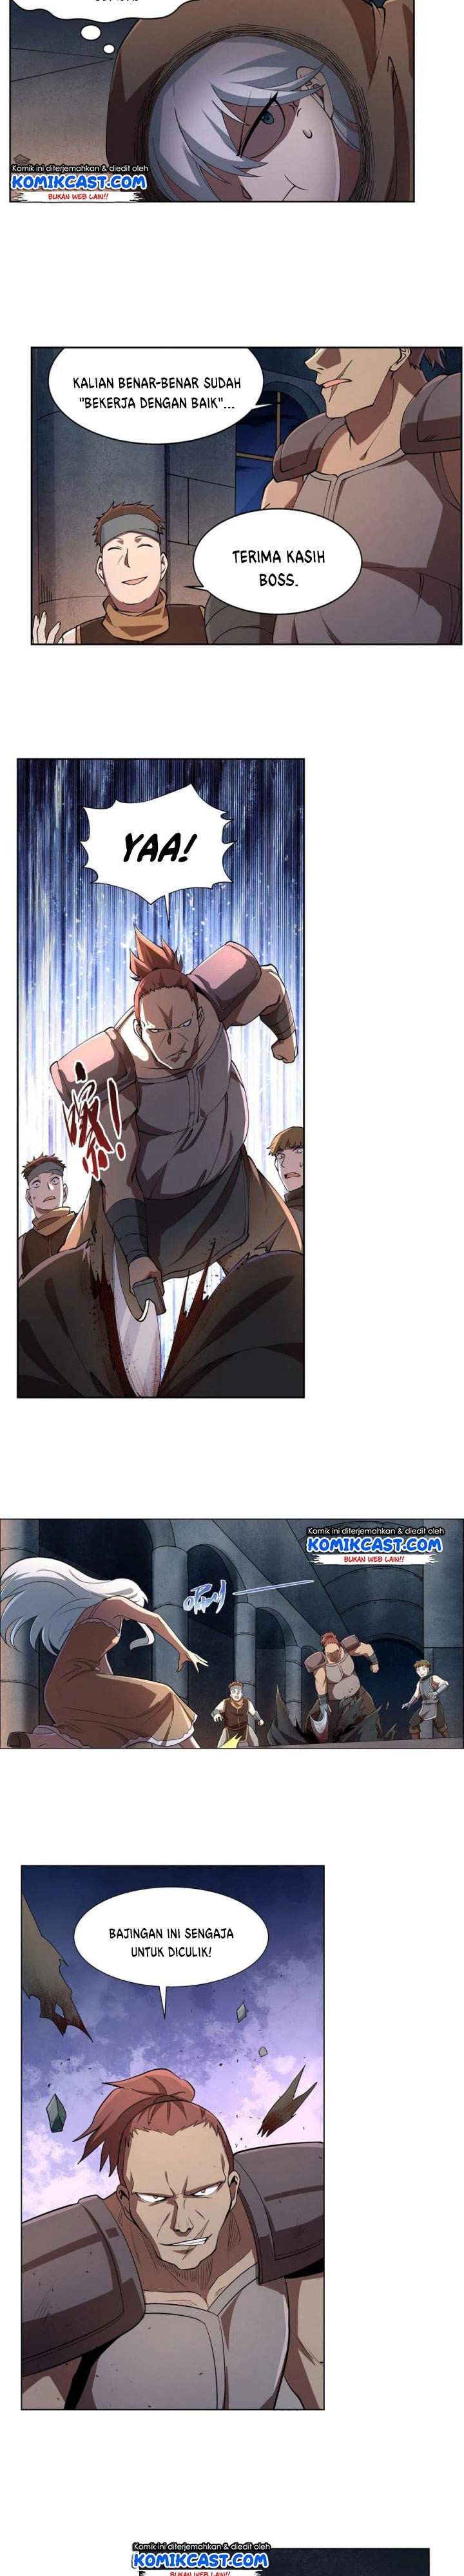 The Demon King Who Lost His Job Chapter 212